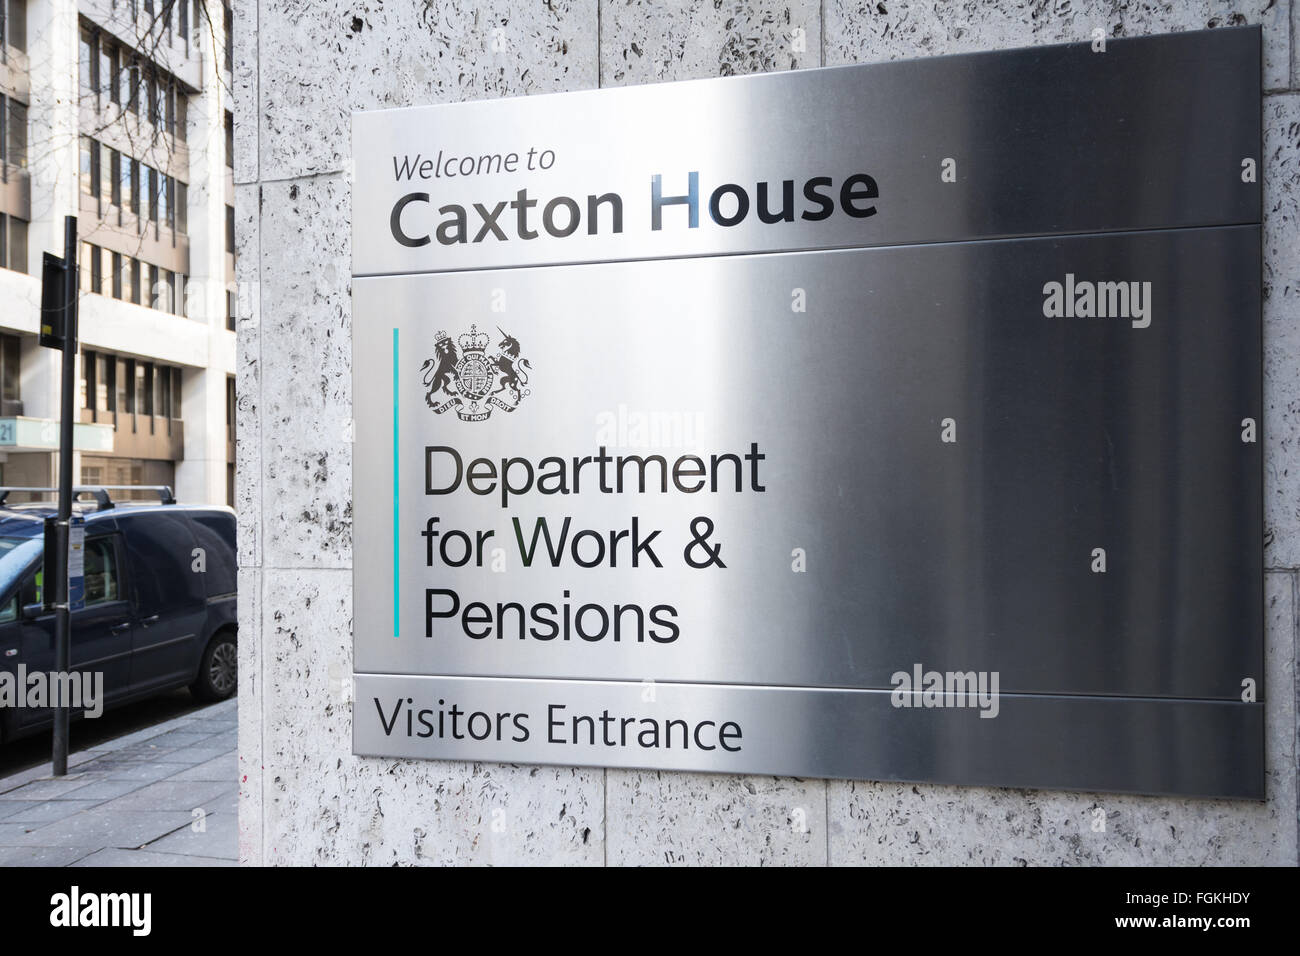 Sign outside the Department for Work and Pensions in Petty France, London, UK - Stock Image